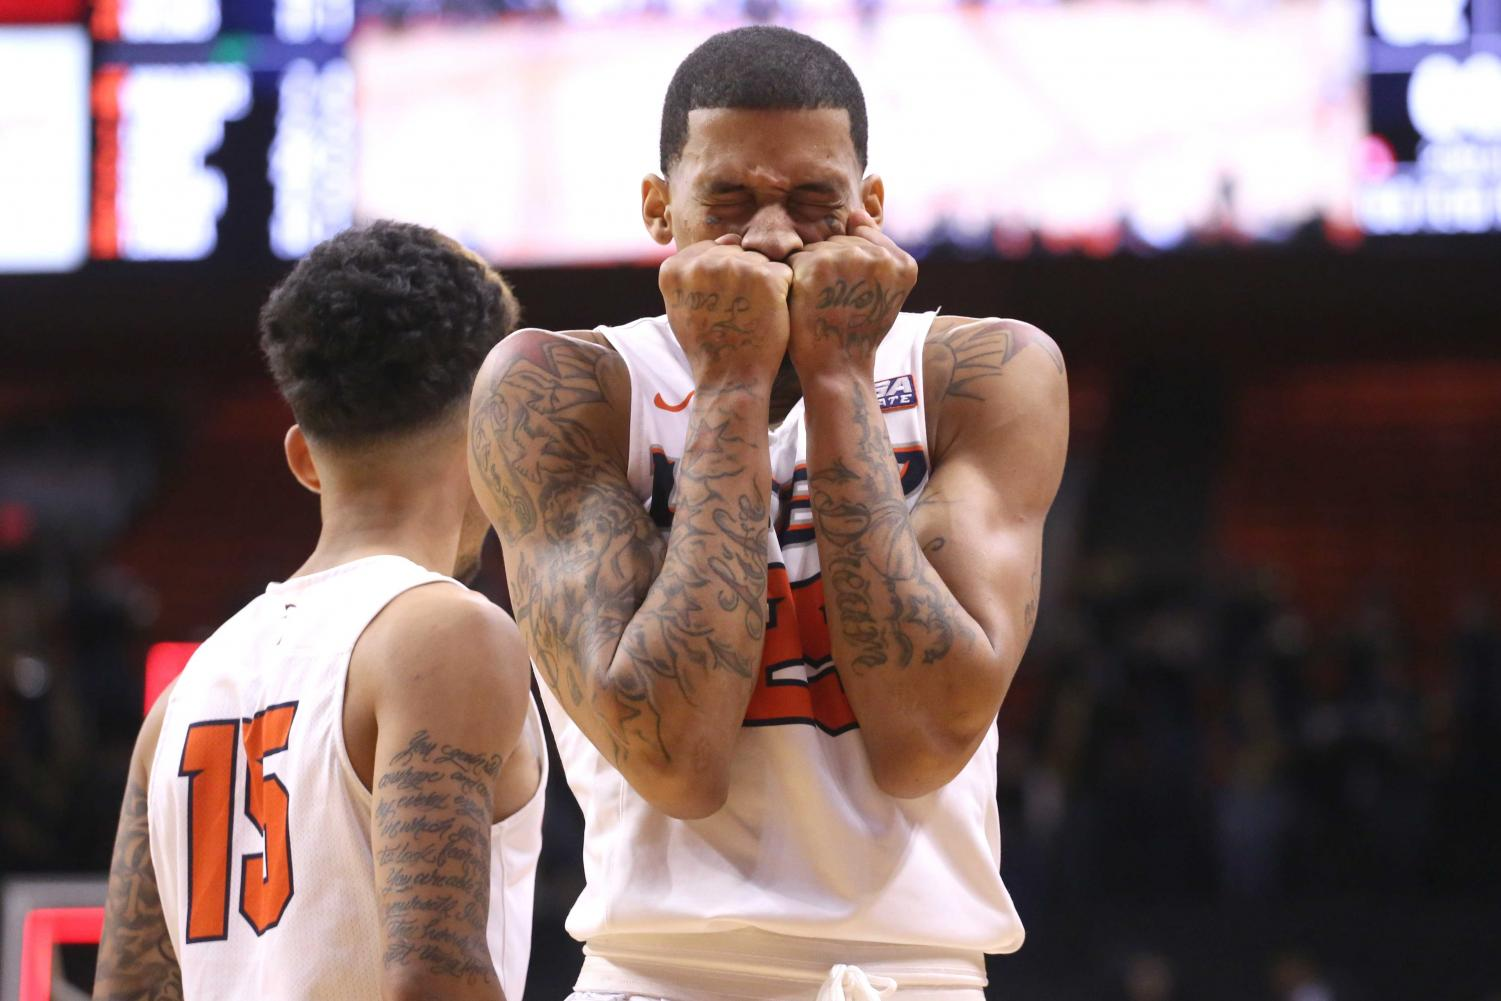 Keith Frazier covers his mouth after Paul Thomas missed a game winning shot.